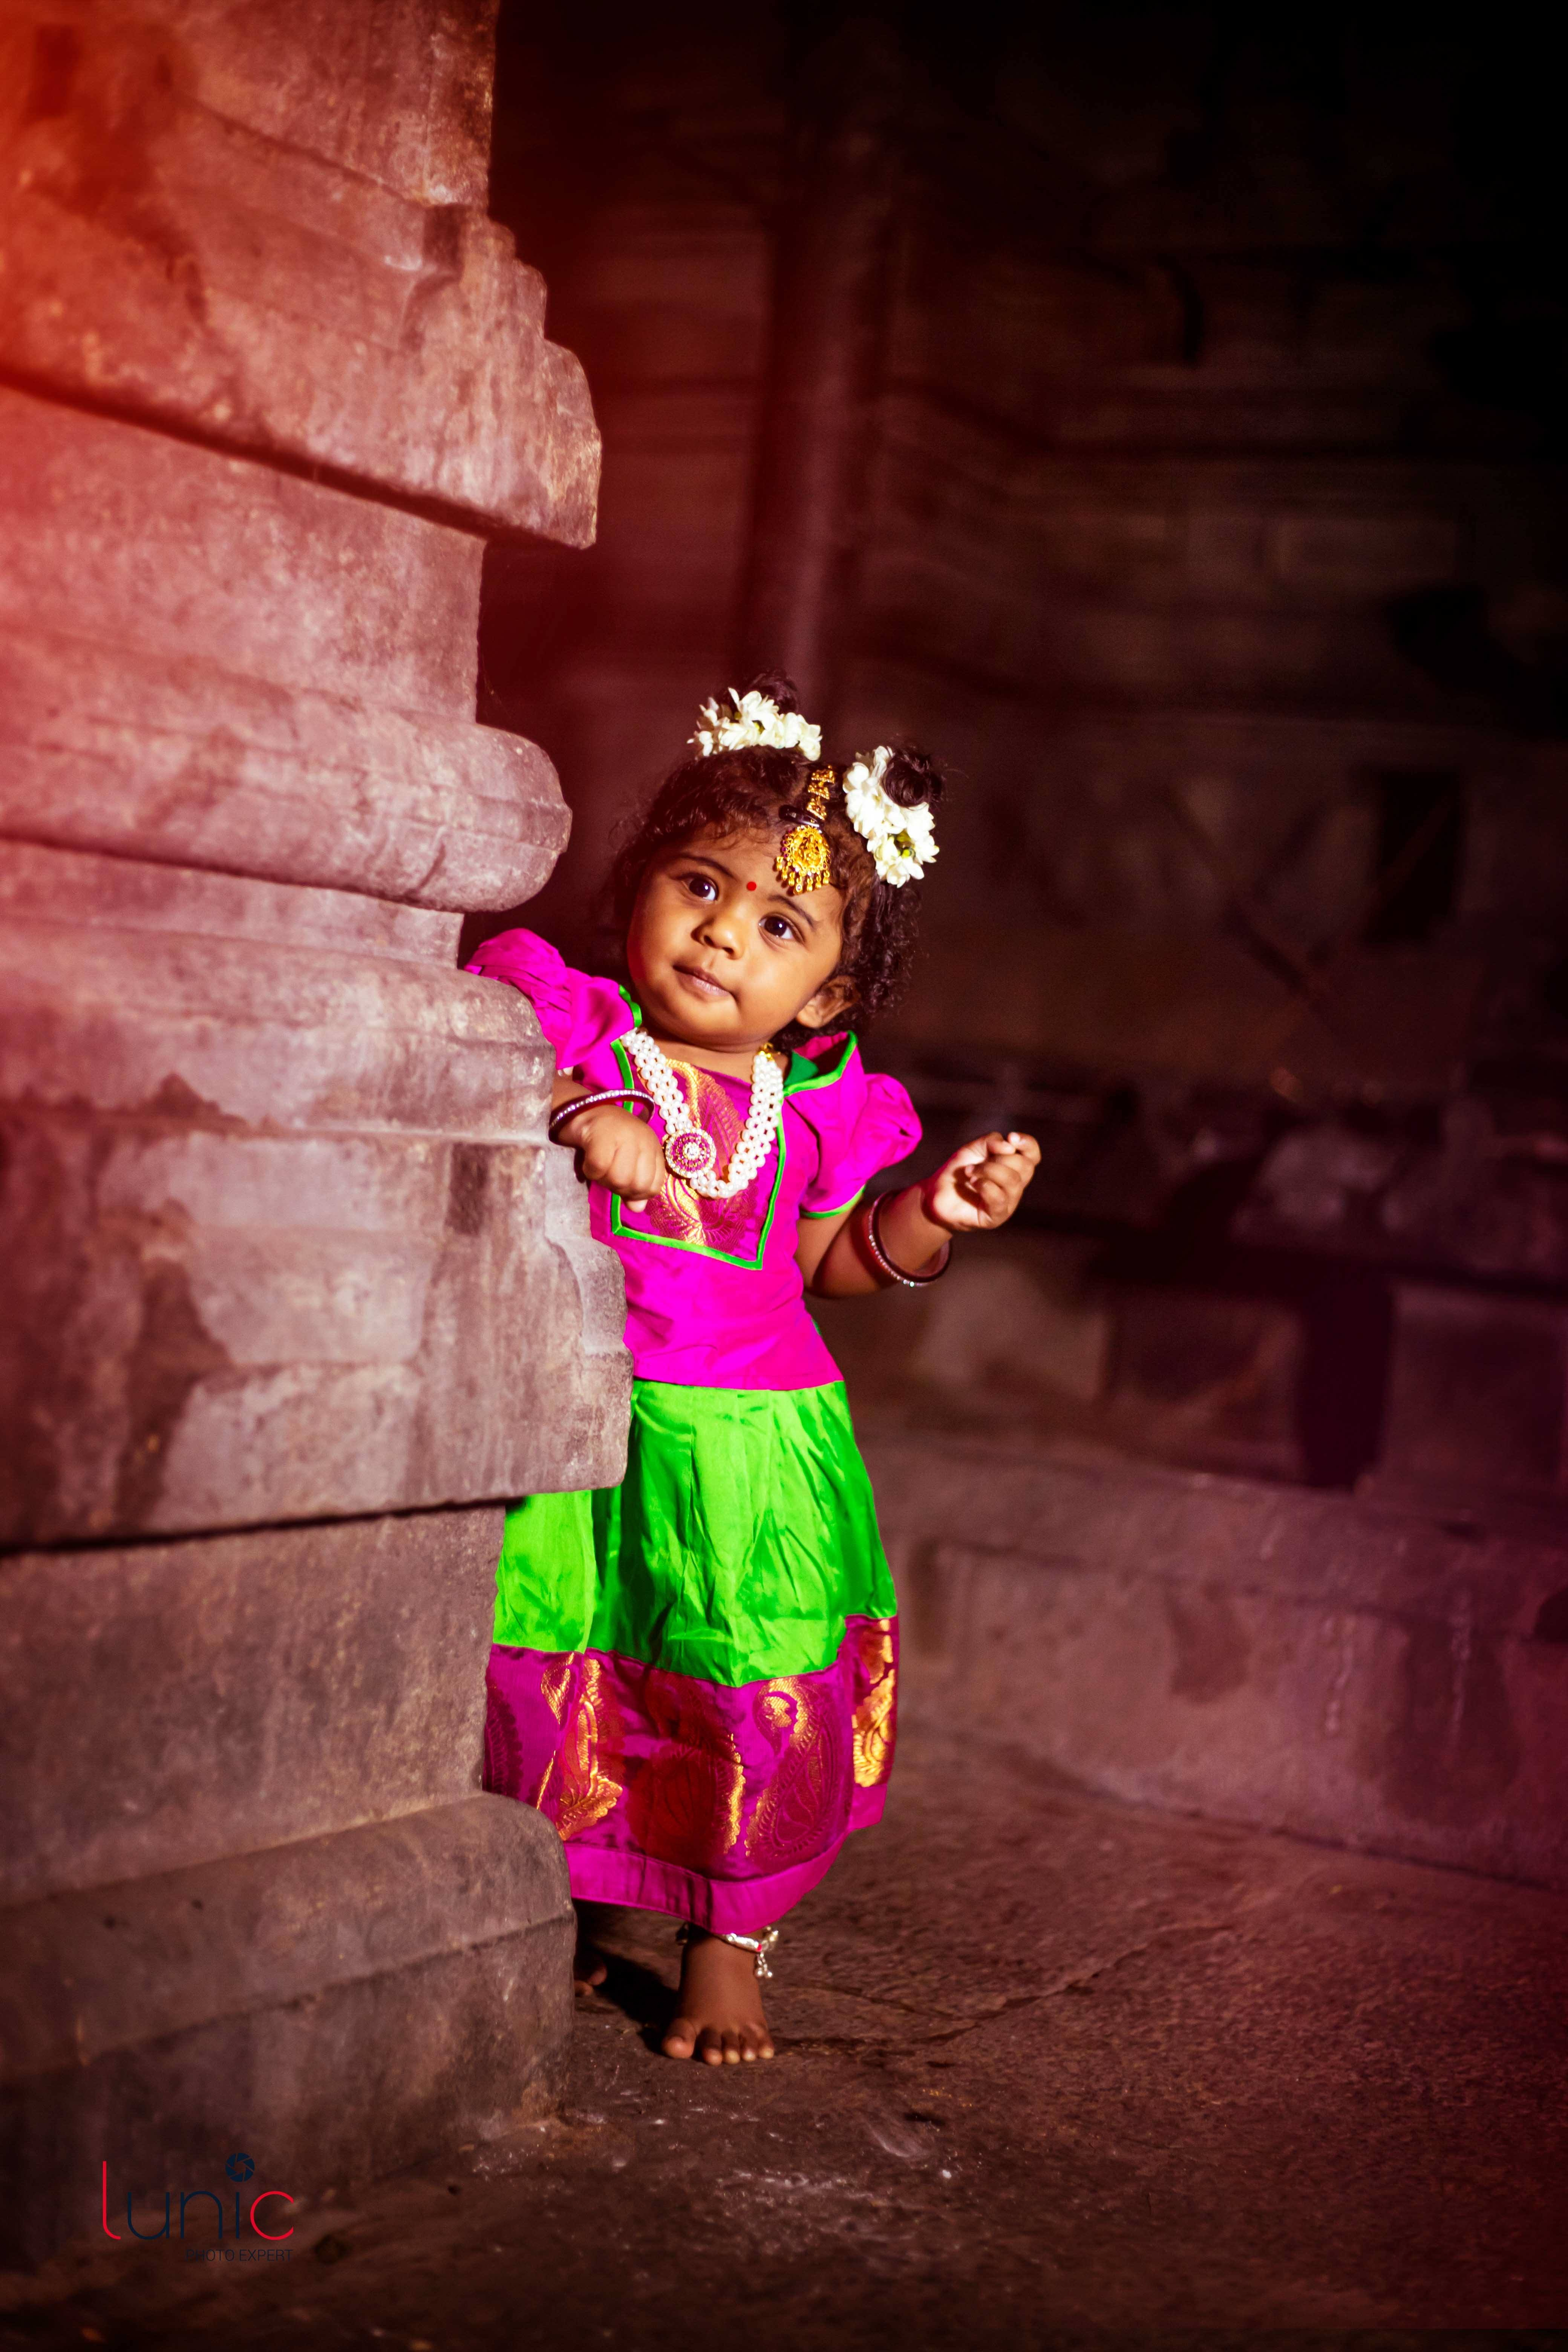 baby girl traditional dress photography idea